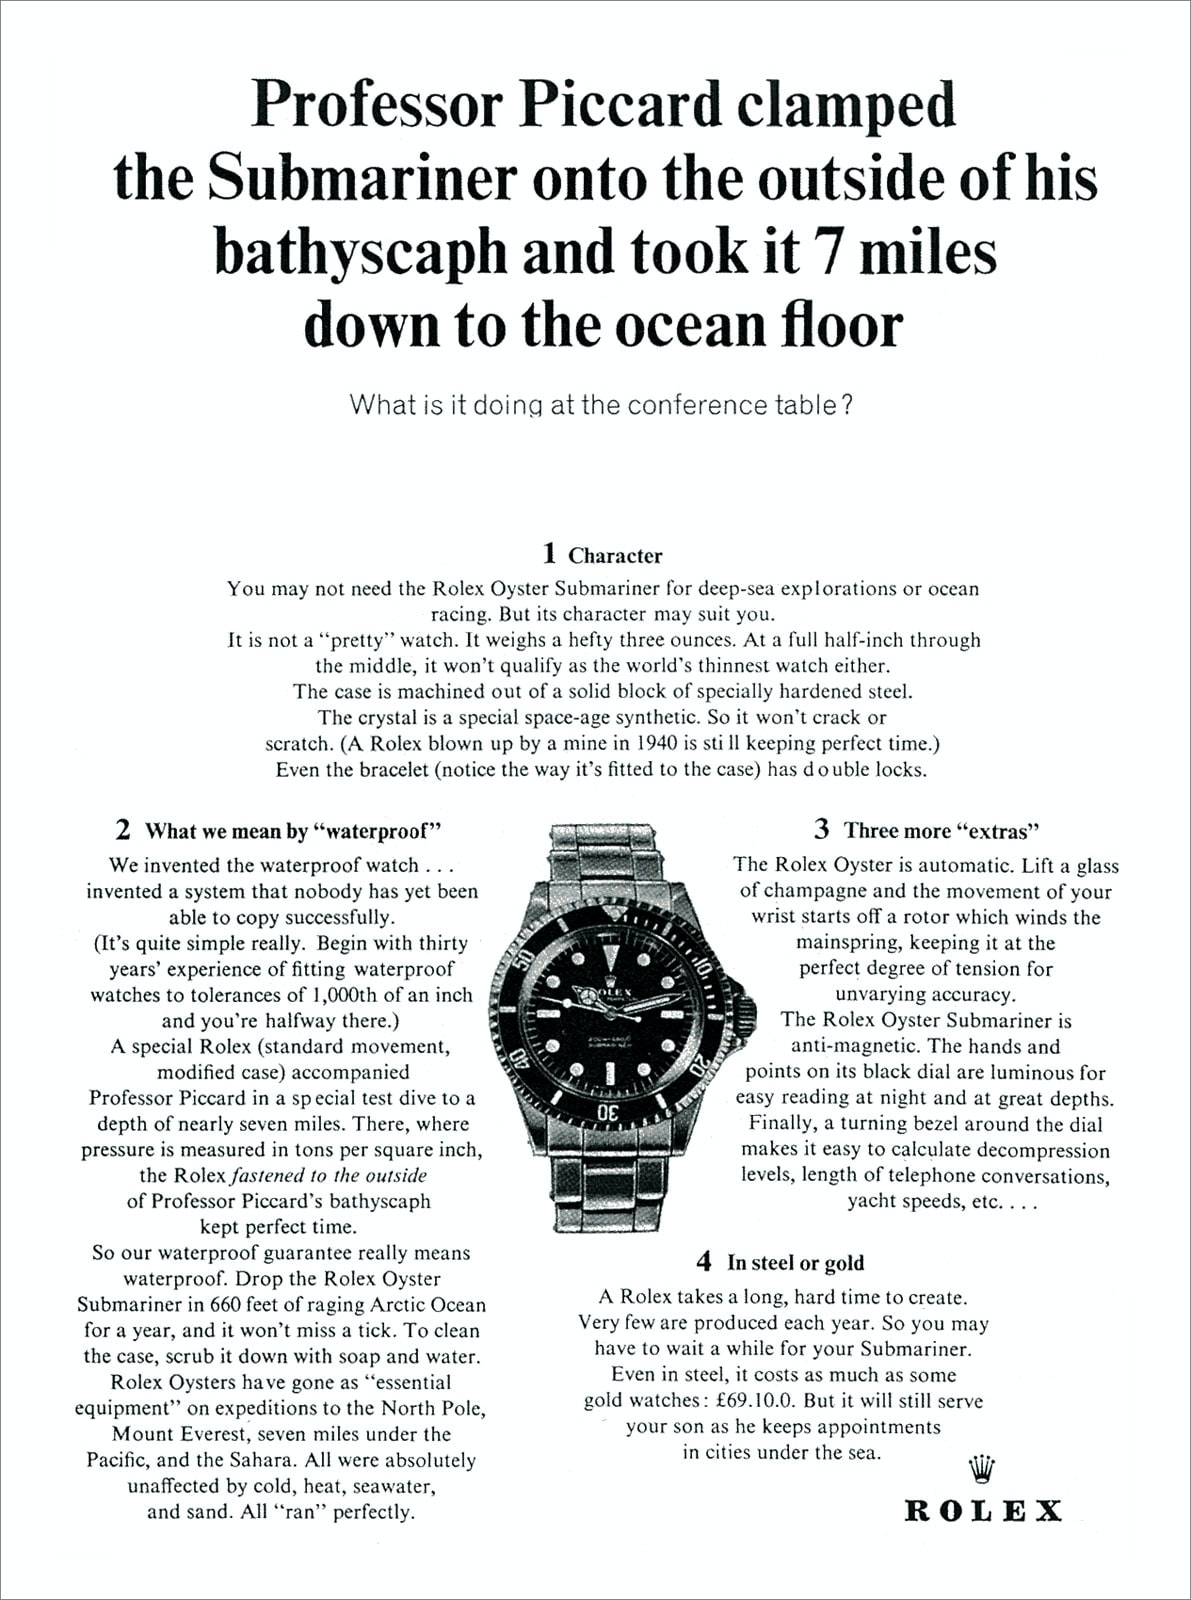 1964 Advertisement for Rolex Submariner A Week On The Wrist: The Rolex Sea-Dweller Reference 126600 A Week On The Wrist: The Rolex Sea-Dweller Reference 126600 1964 Professor Piccard Submariner